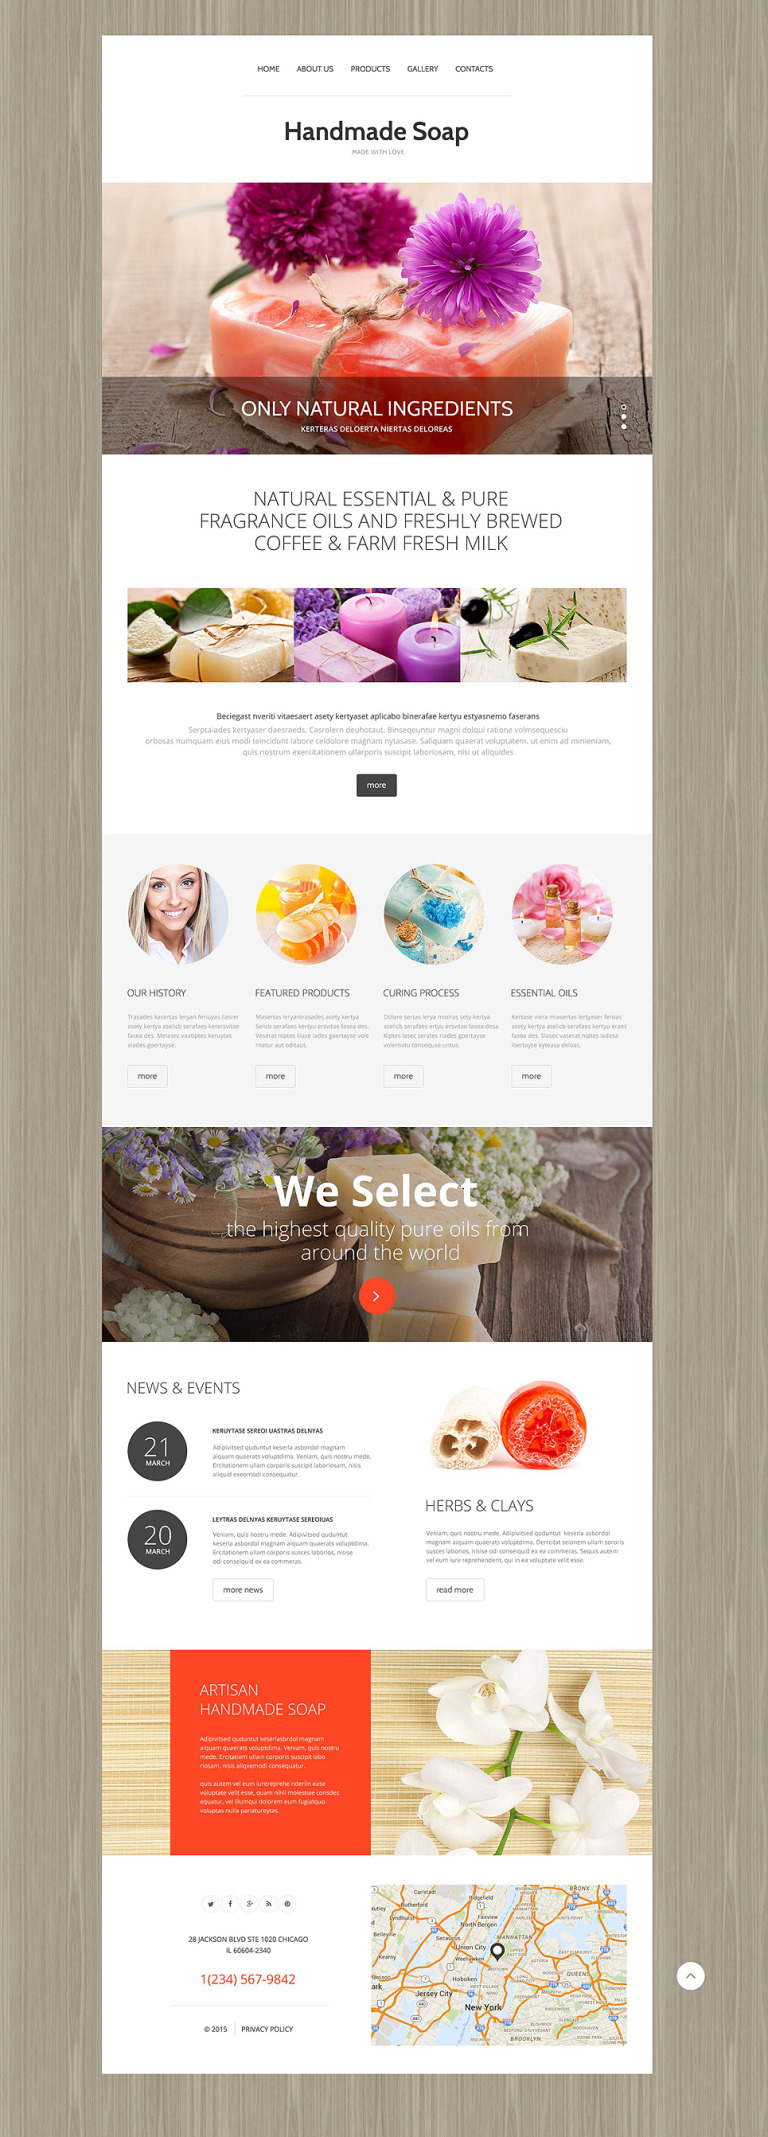 Handmade Soap Website Template New Screenshots BIG